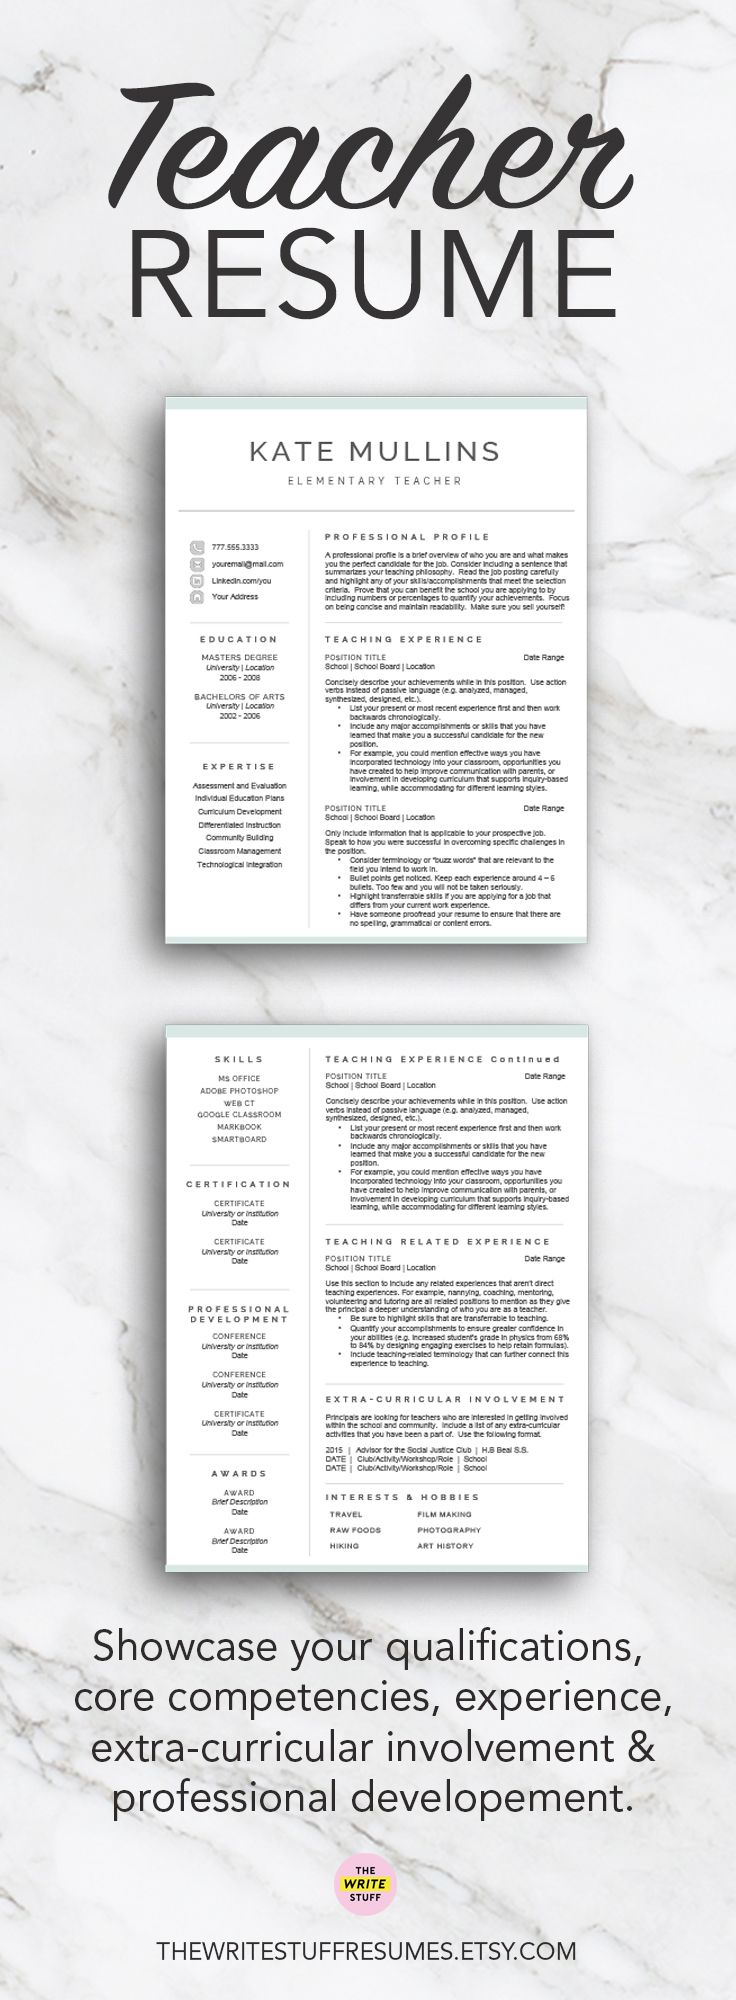 teacher resume template for word and pages educator resume cover letter